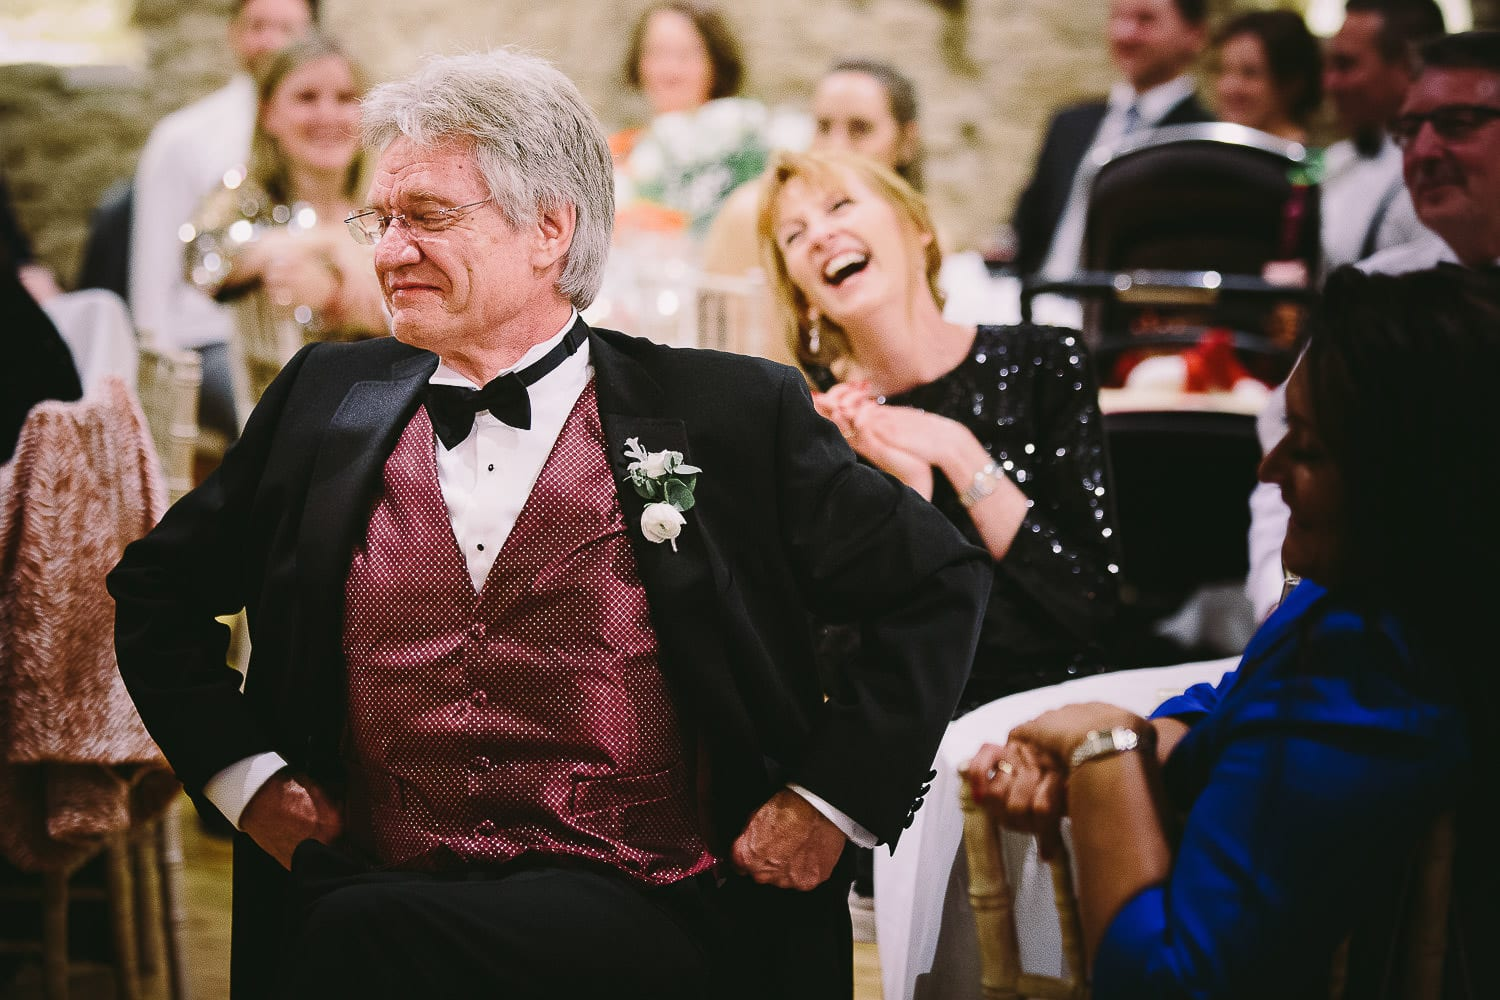 Brides parents during the speeches